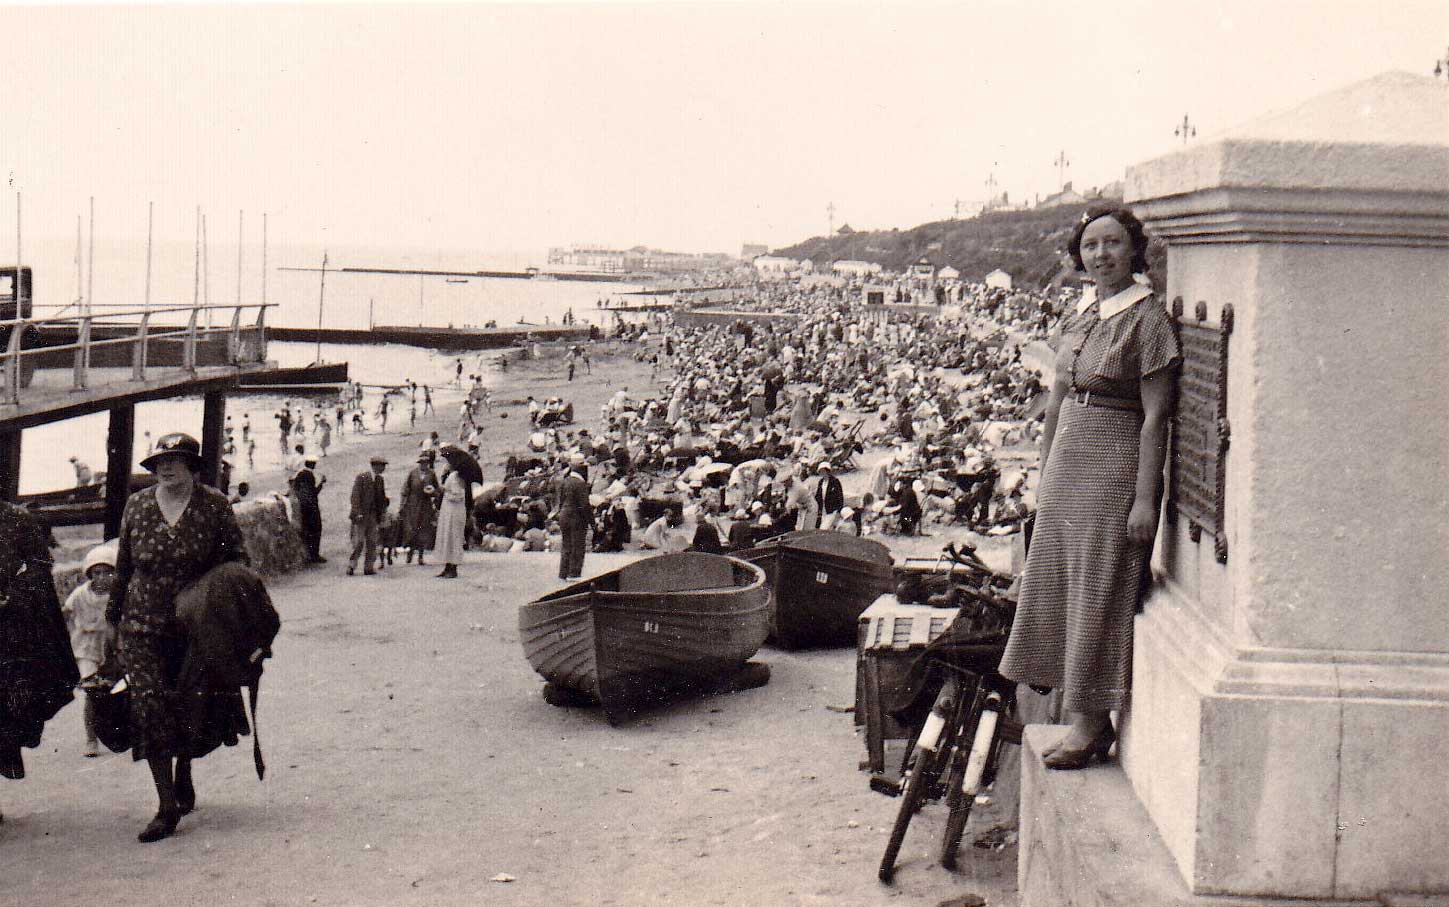 Black & white, young woman called Marjorie leaning against a wide pillar at entrance to Clacton beach beside pier (not in shot)